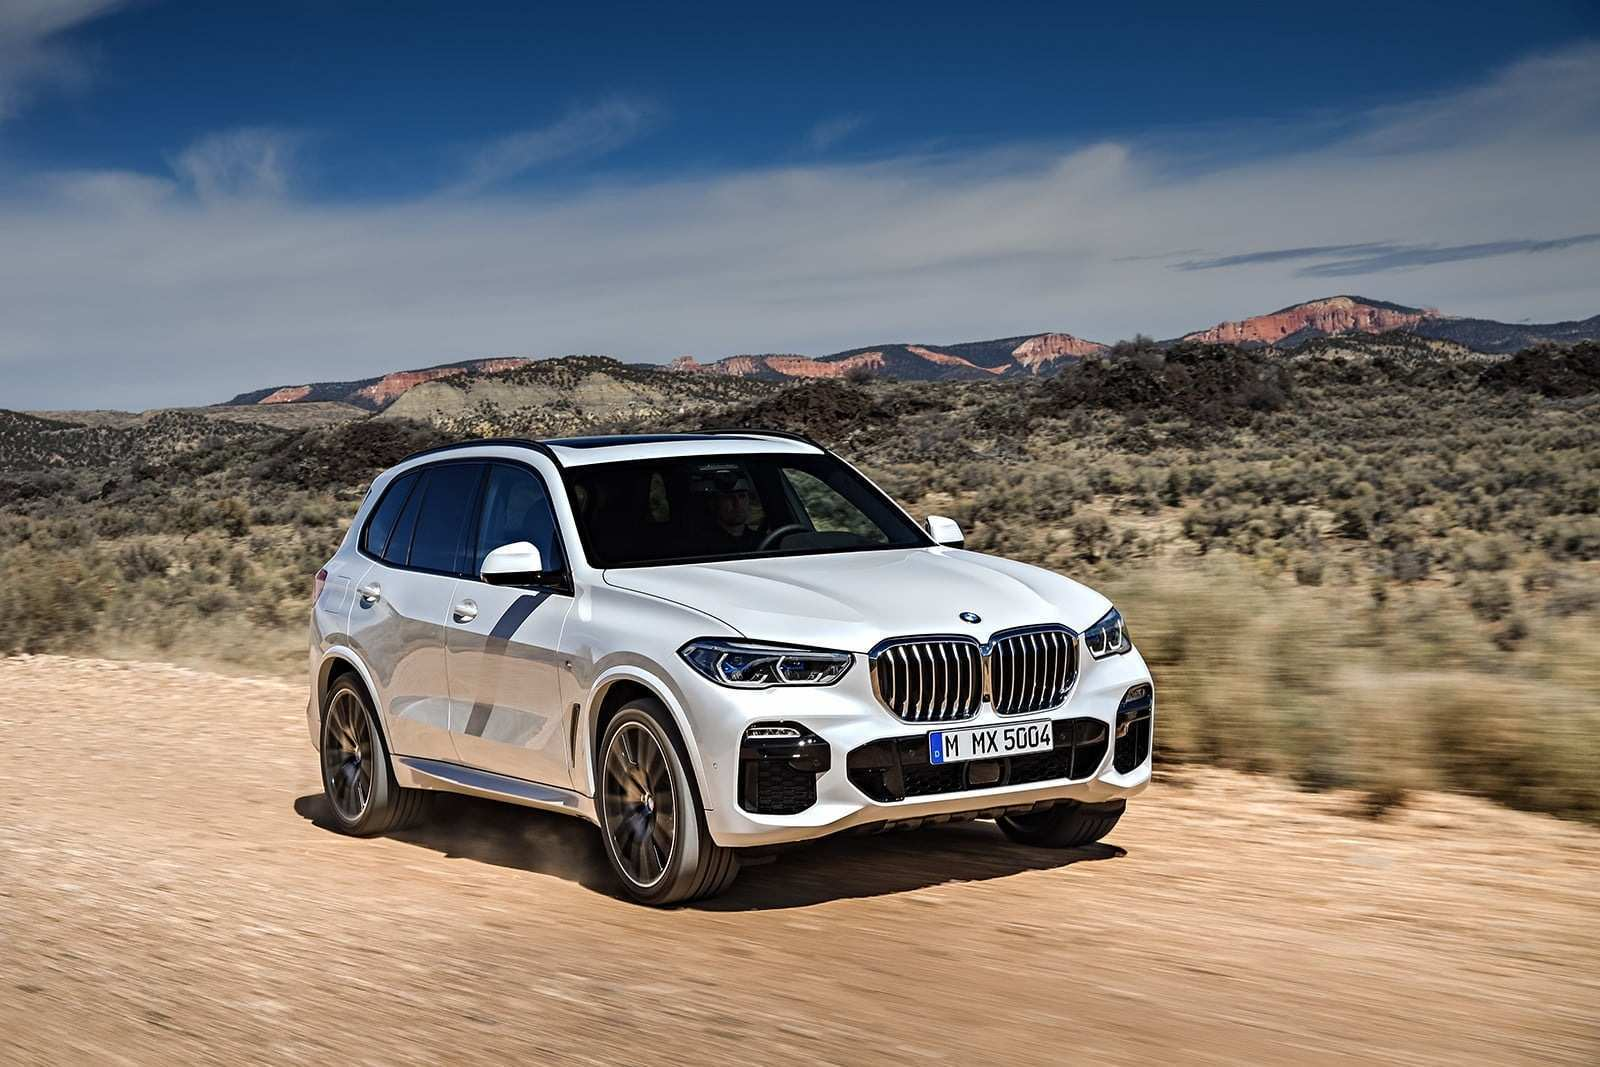 36 Best Review Bmw 2019 X5 Release Date Performance Spy Shoot by Bmw 2019 X5 Release Date Performance